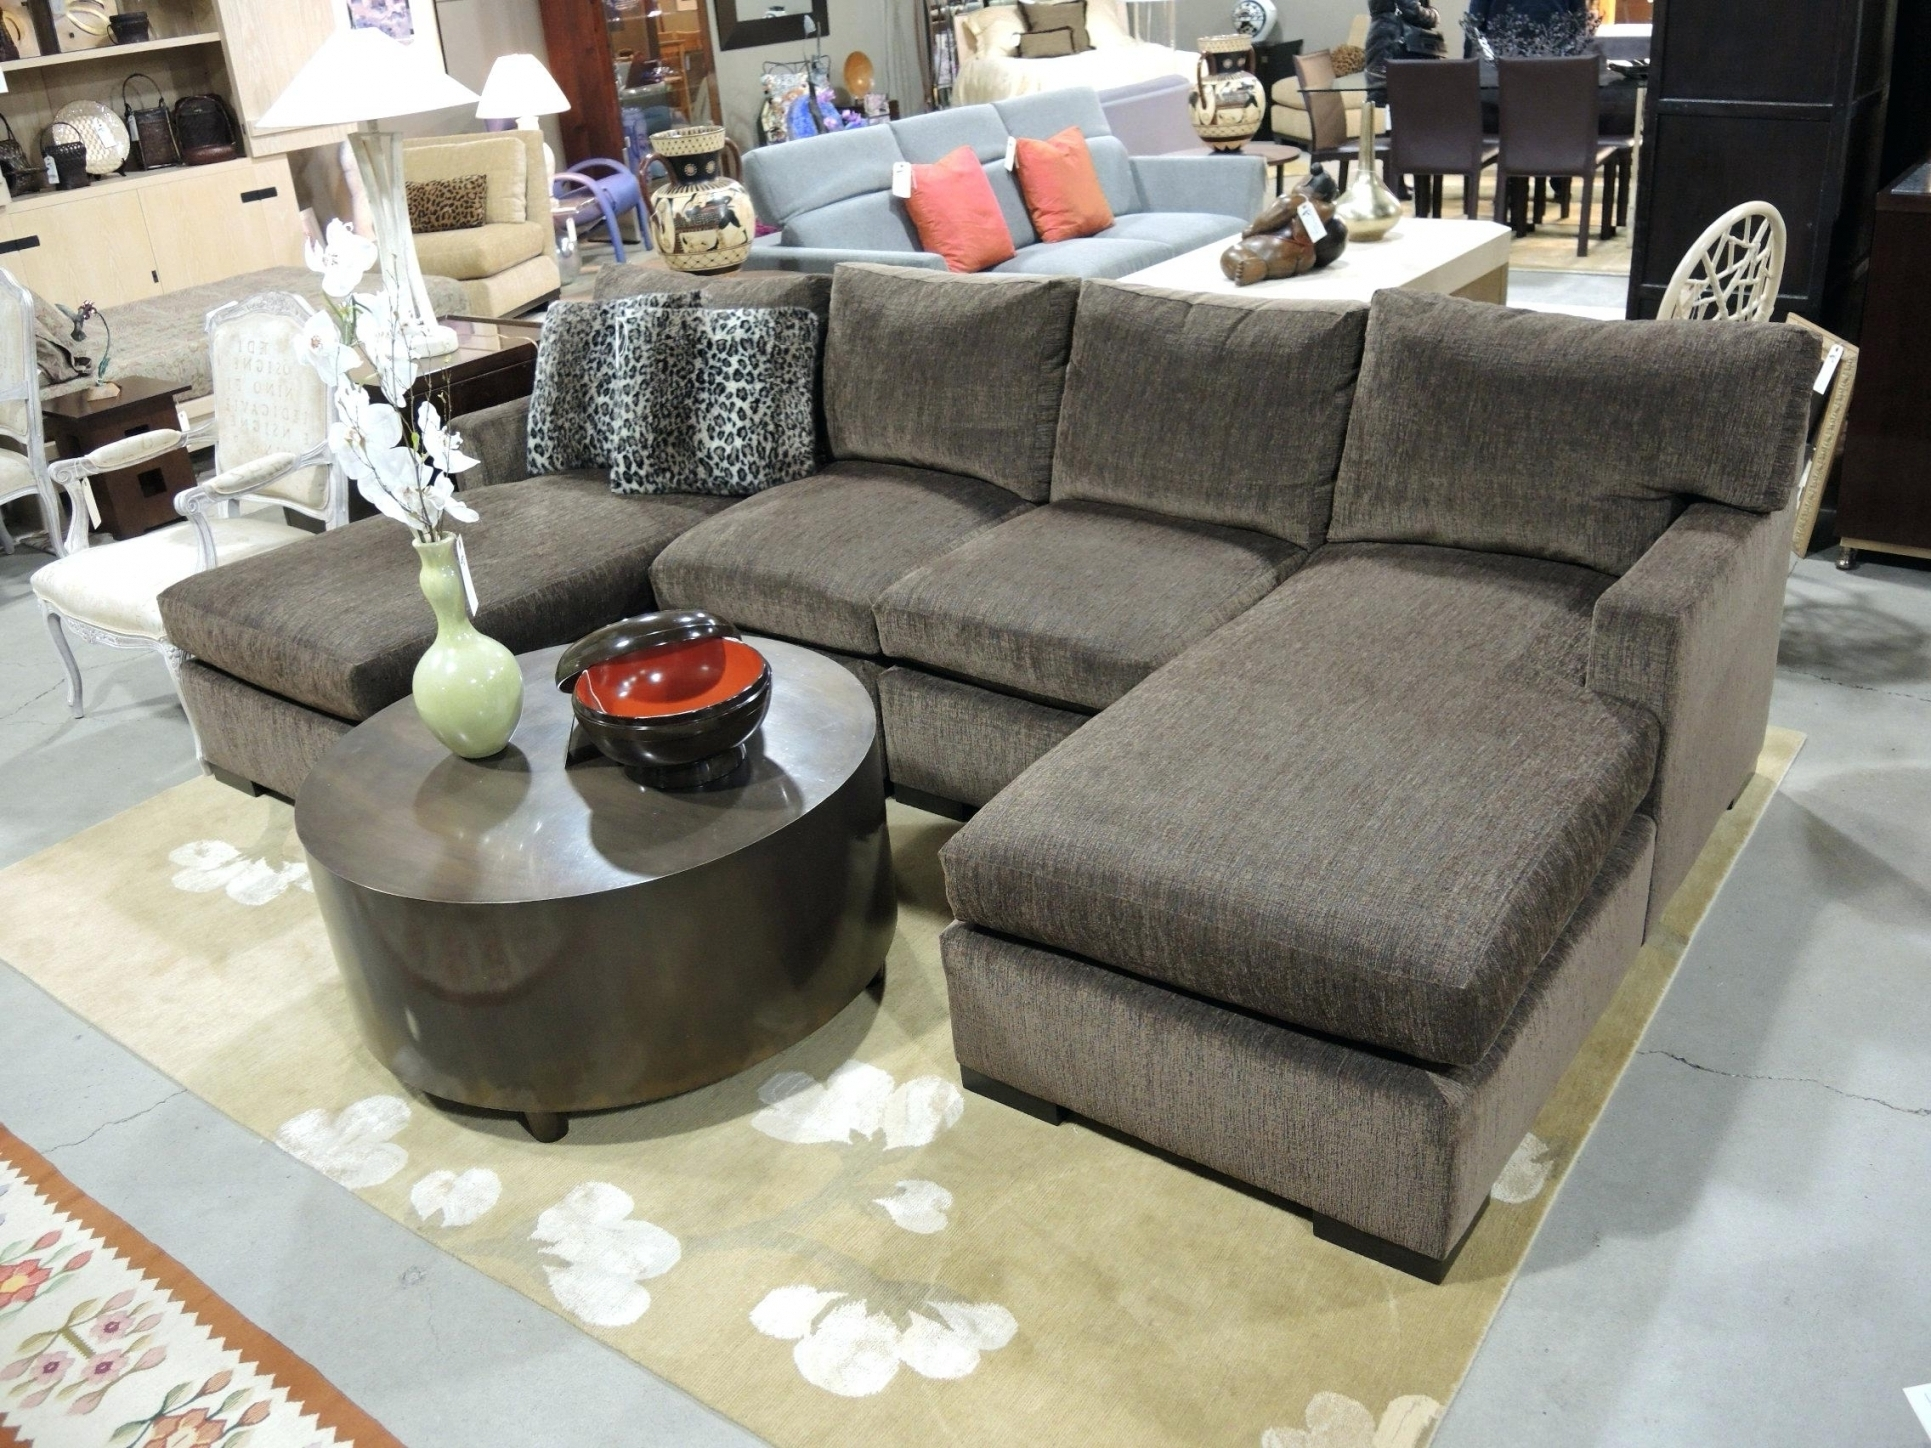 Newest Double Chaise Couches With Chaise : Classic Chesterfield Double Chaise Leather Sectional Sofa (View 8 of 15)